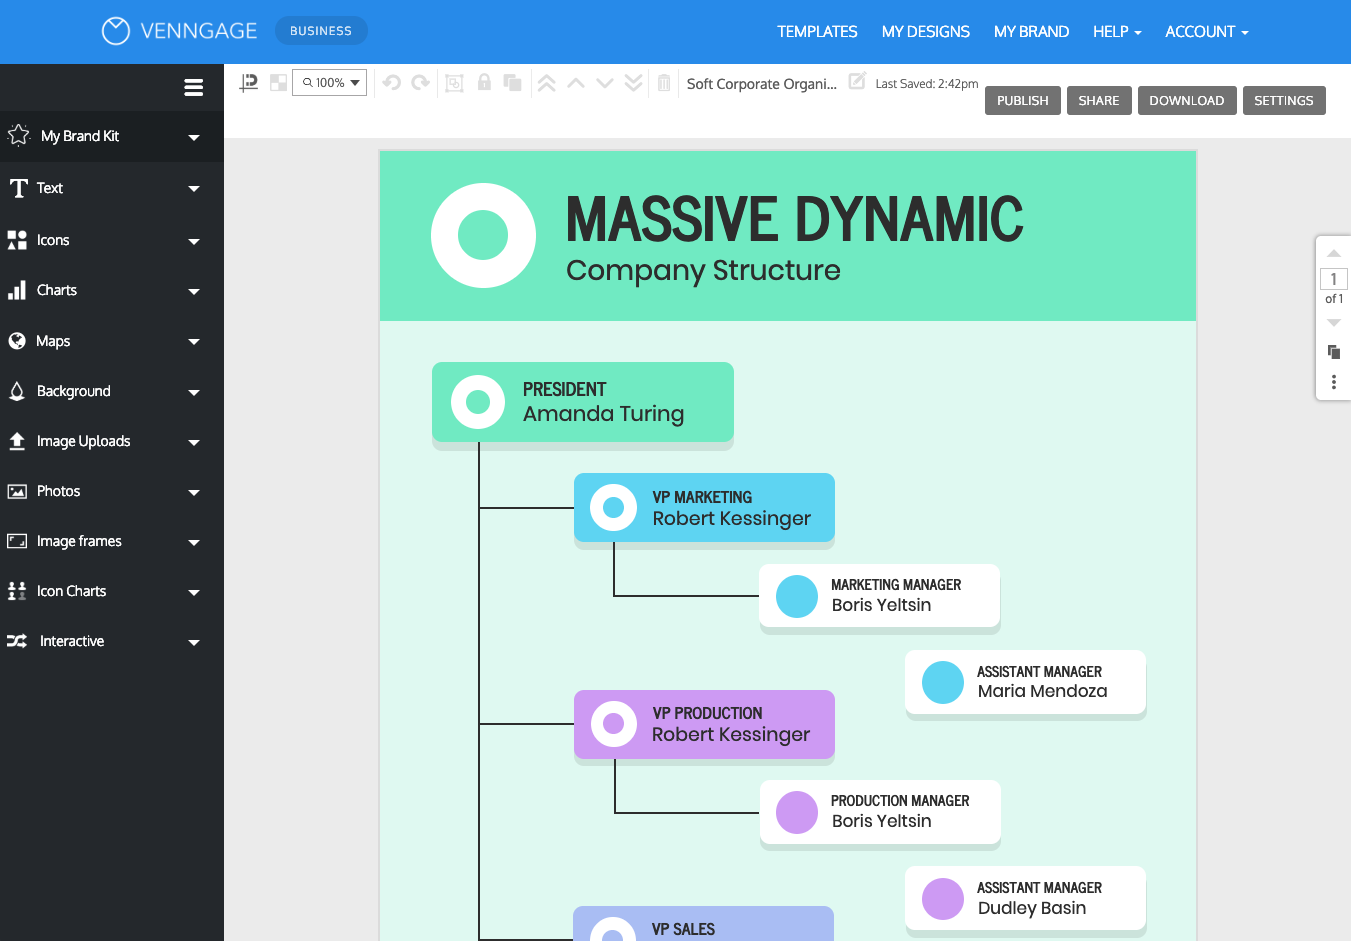 Custom My Design Assistant online flowchart maker - create a custom flowchart - venngage